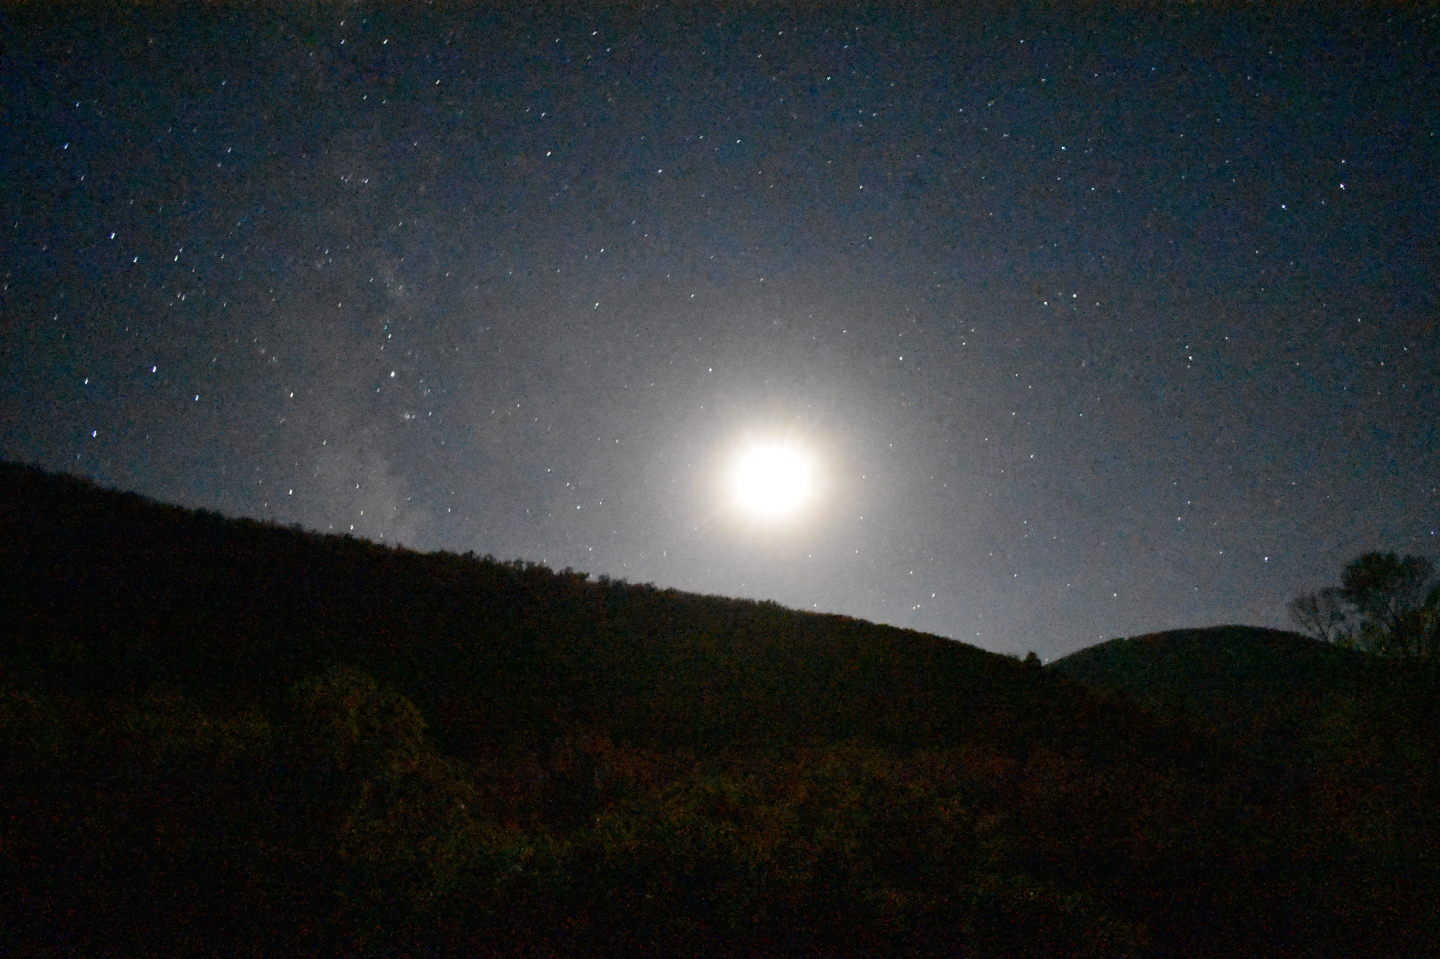 The night sky near Crawford, CO